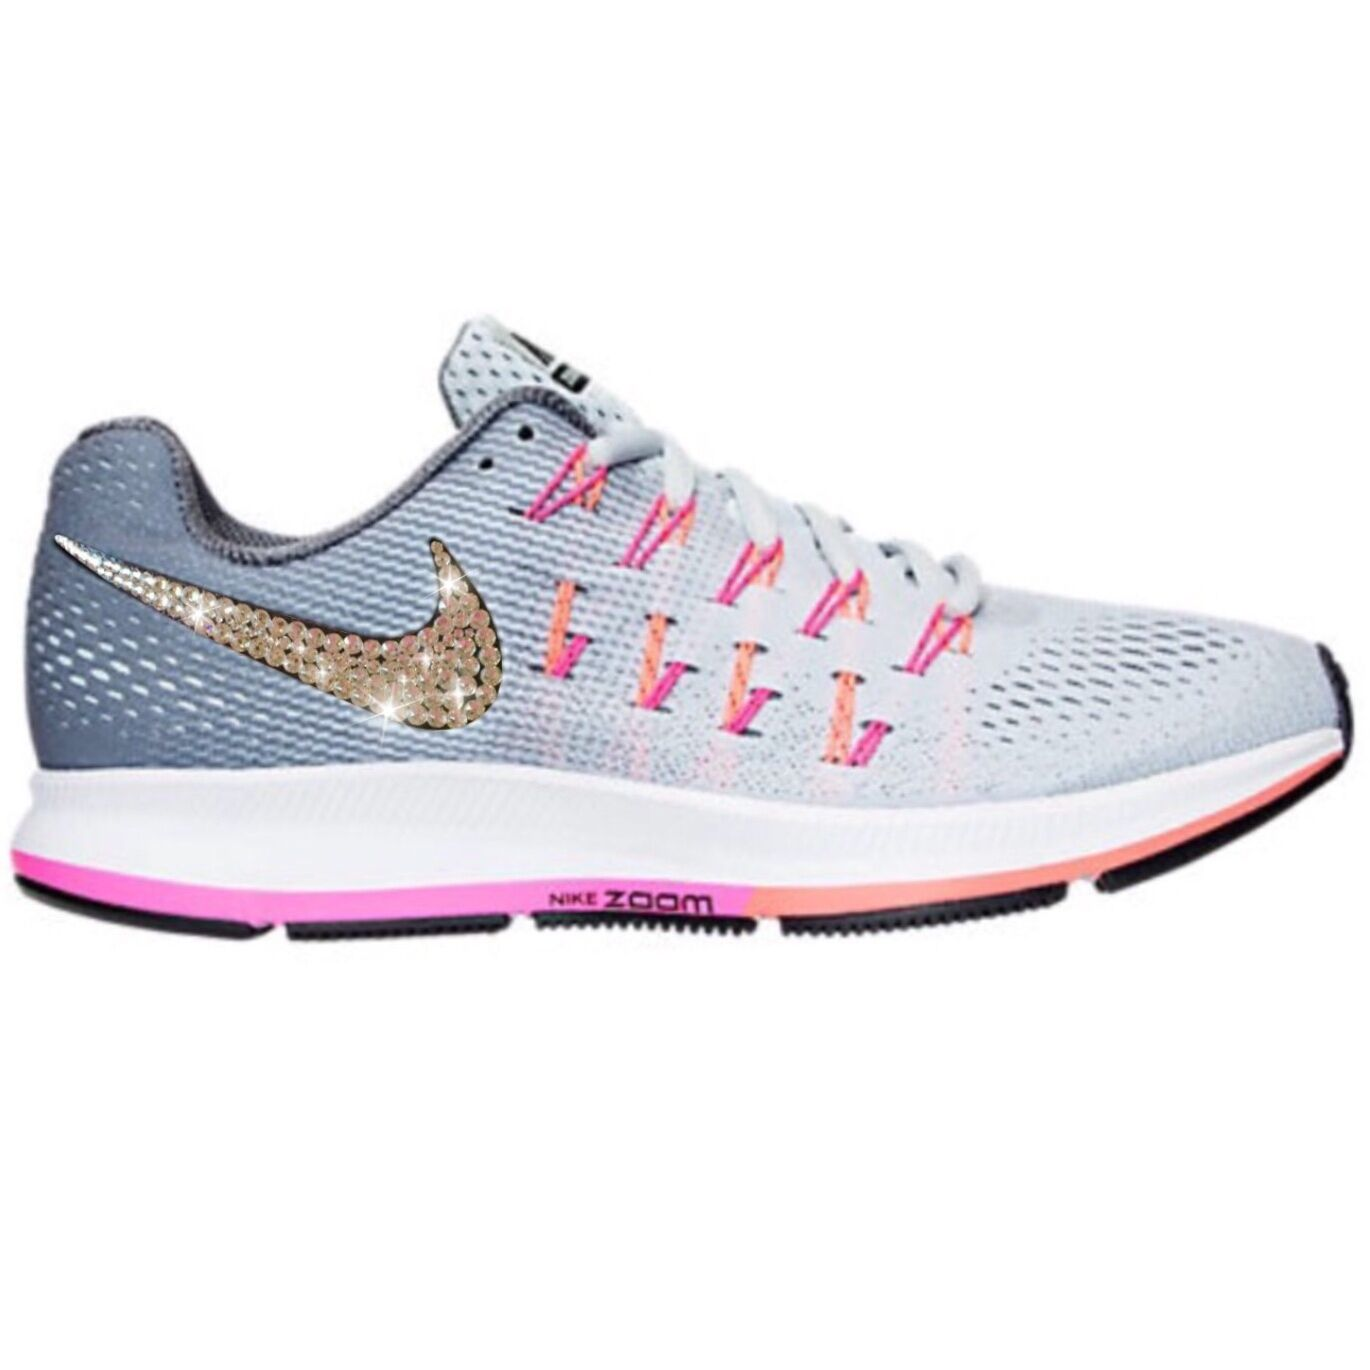 Bling Nike Air Zoom Pegasus 33 shoes w  Swarovski Crystal  Grey Pink